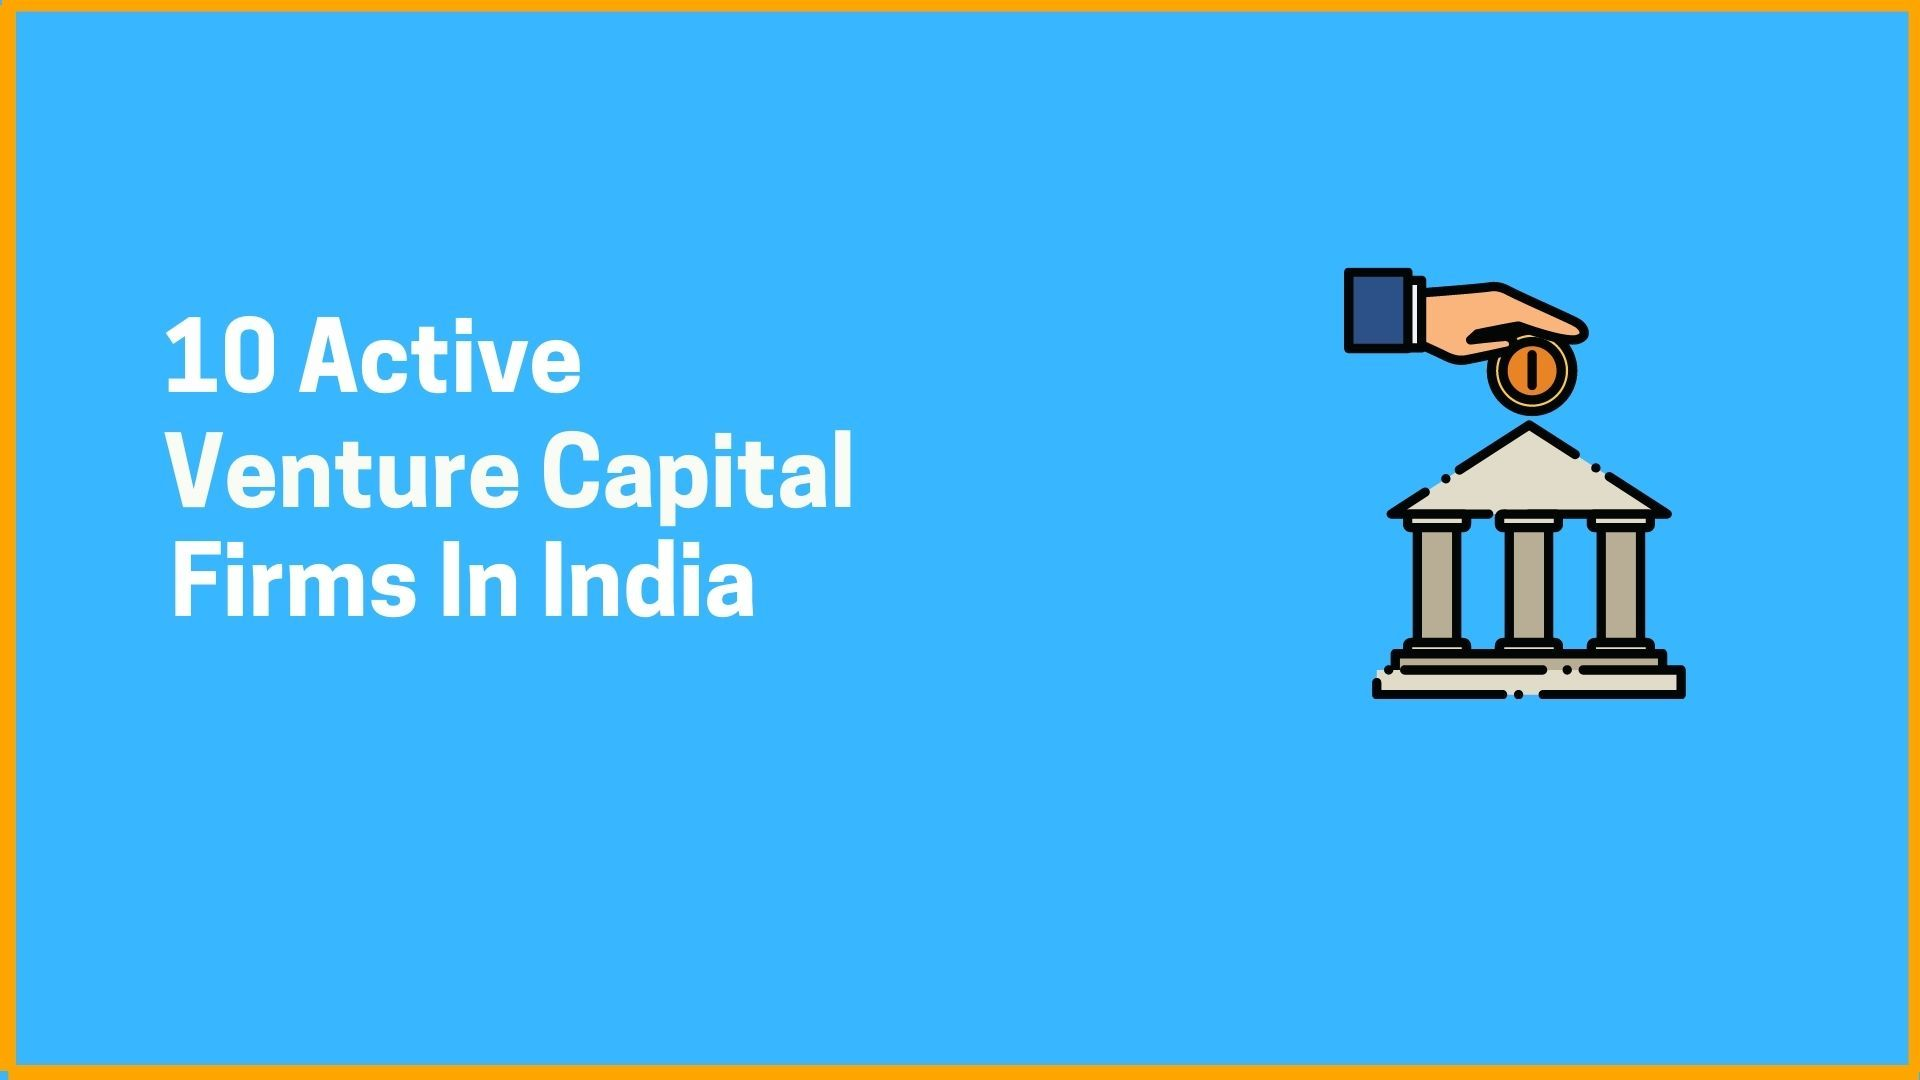 10 Active Venture Capital Firms In India